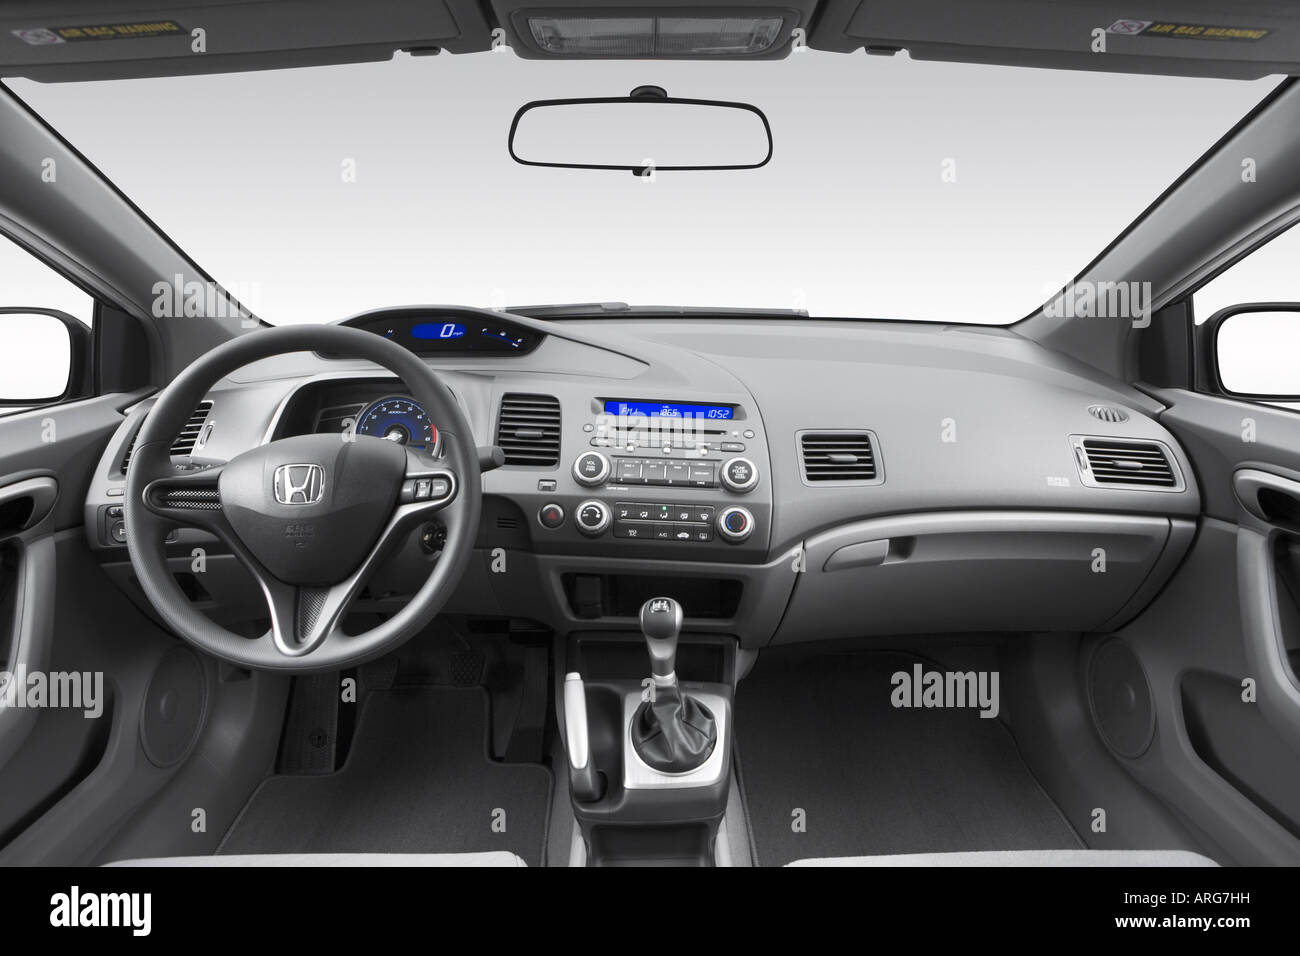 honda civic dashboard stock  honda civic dashboard stock images alamy